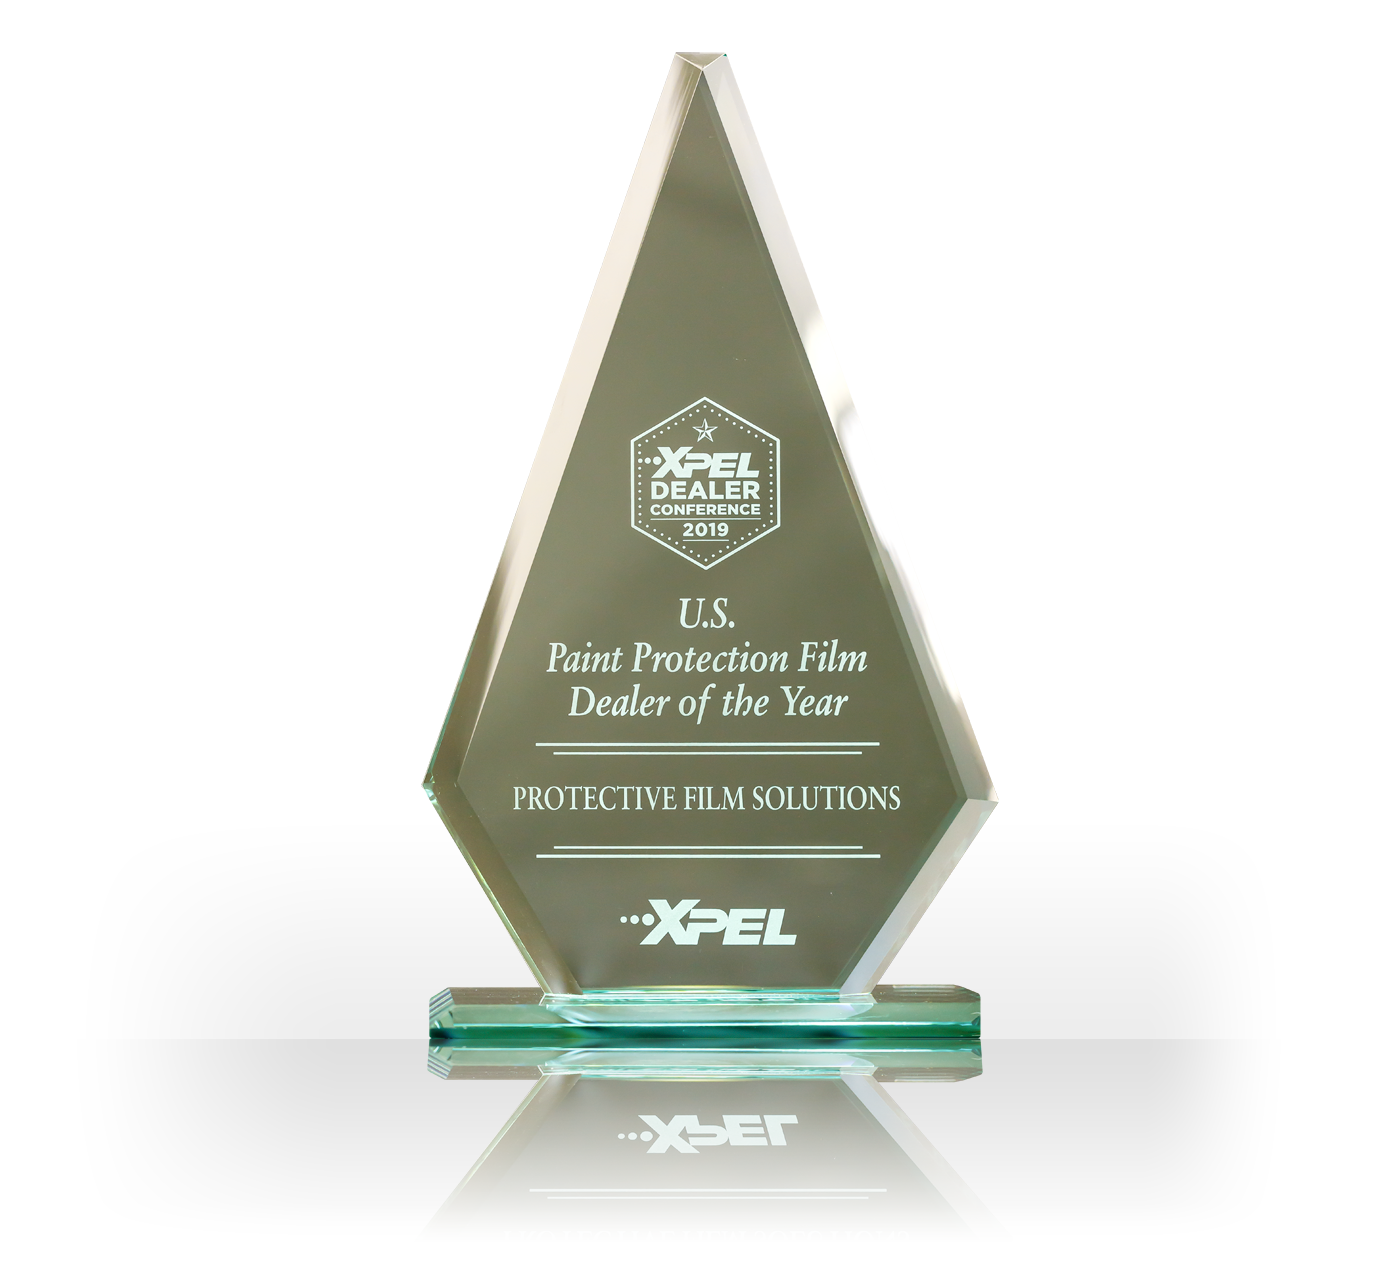 PFS XPEL Dealer of the Year Award 2019